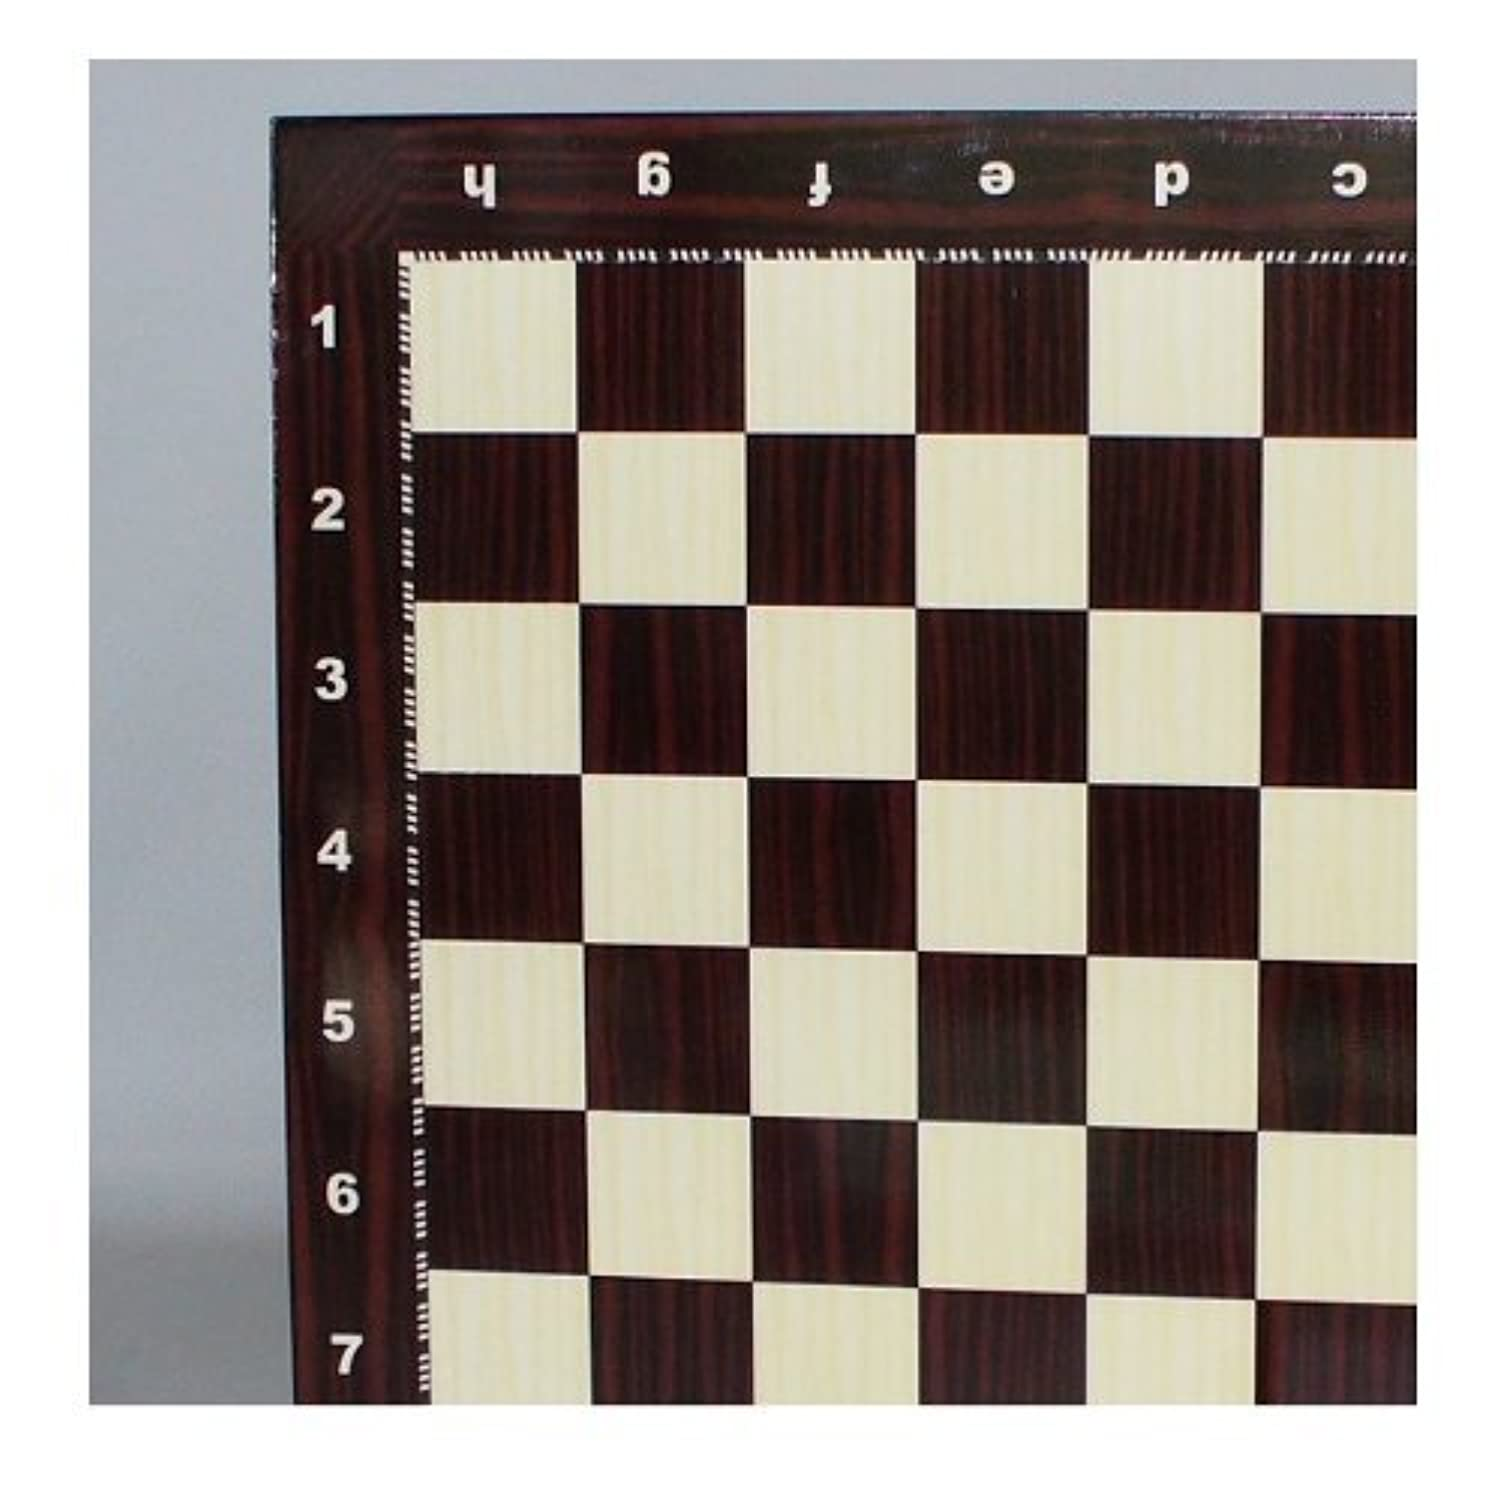 Yenigun Chess Board - Alphanumeric Wood Grain by YENIGUN [並行輸入品]